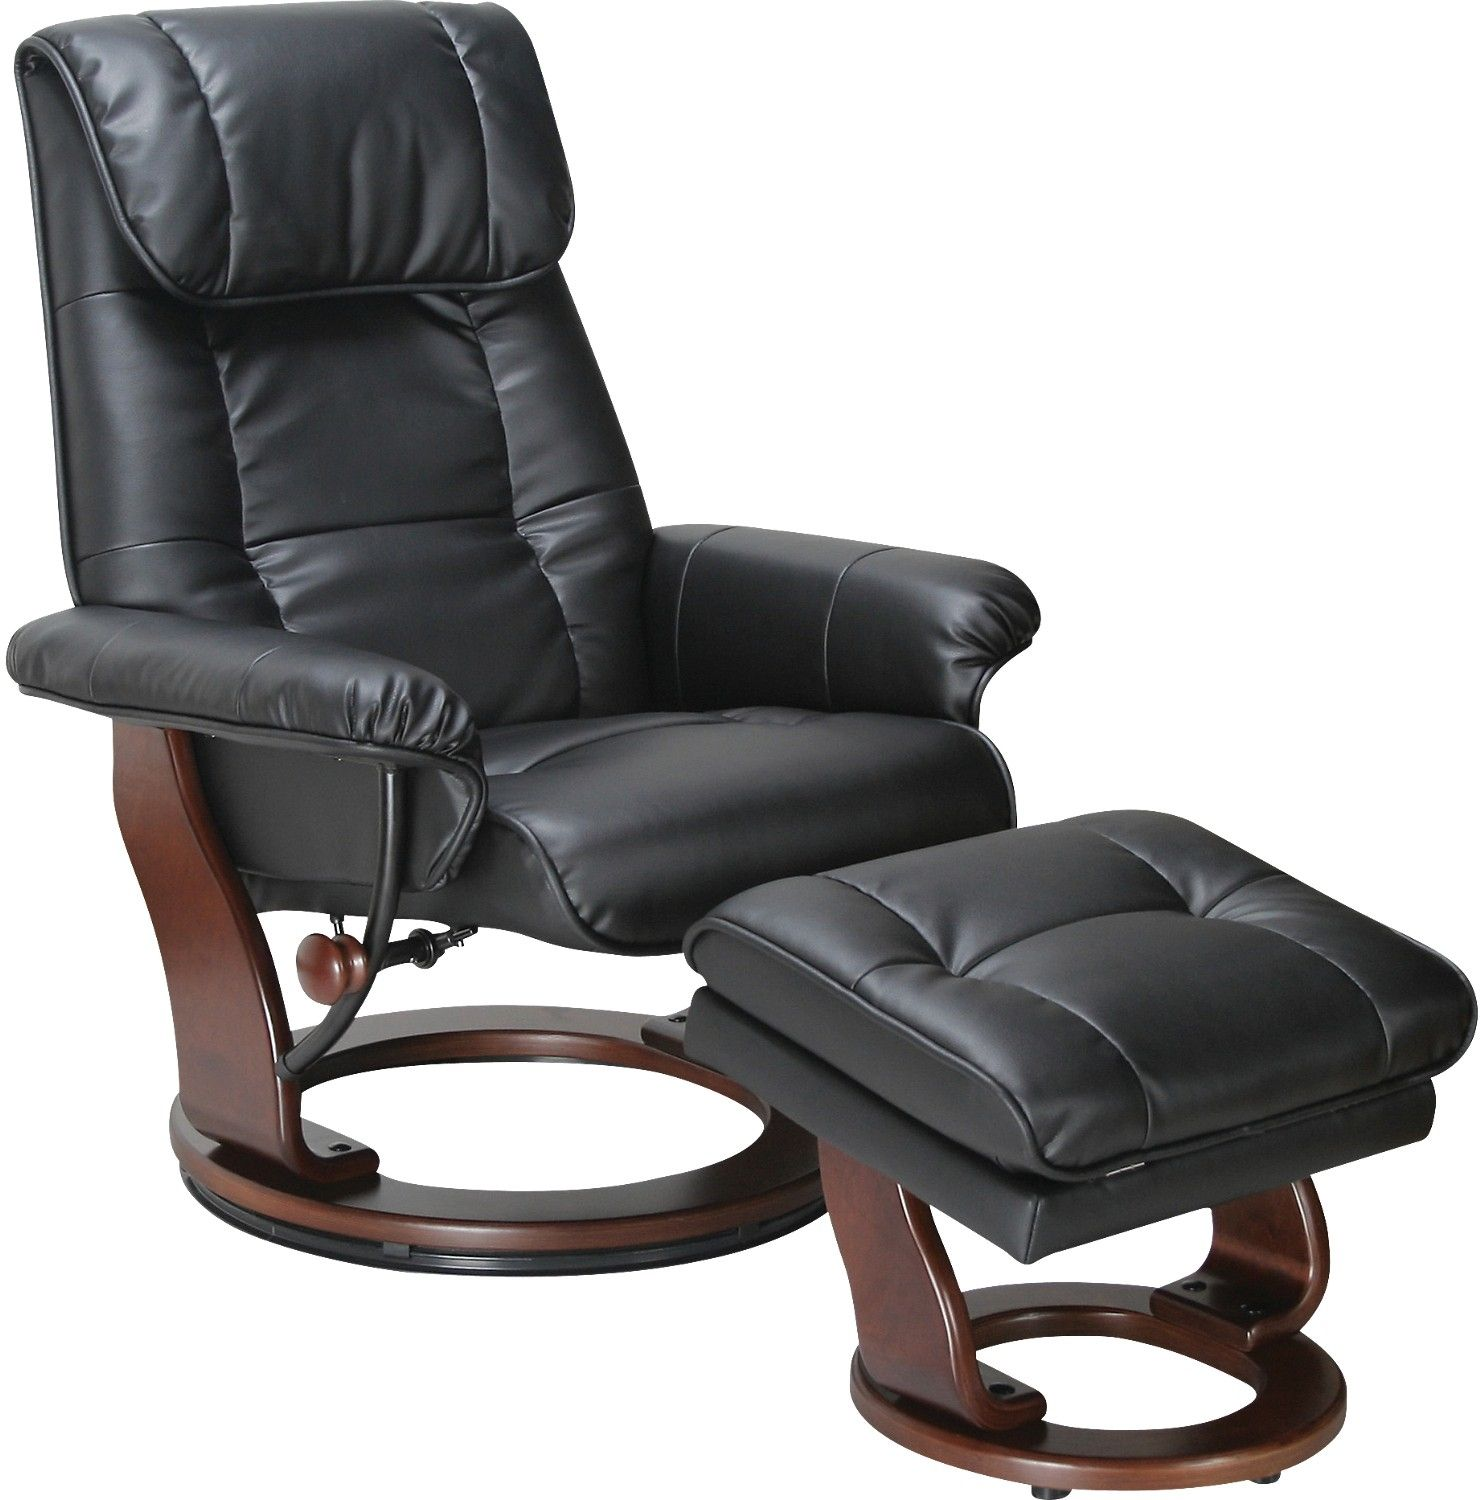 Dixon Black Reclining Chair Relaxsessel Moderne Zimmer Sessel